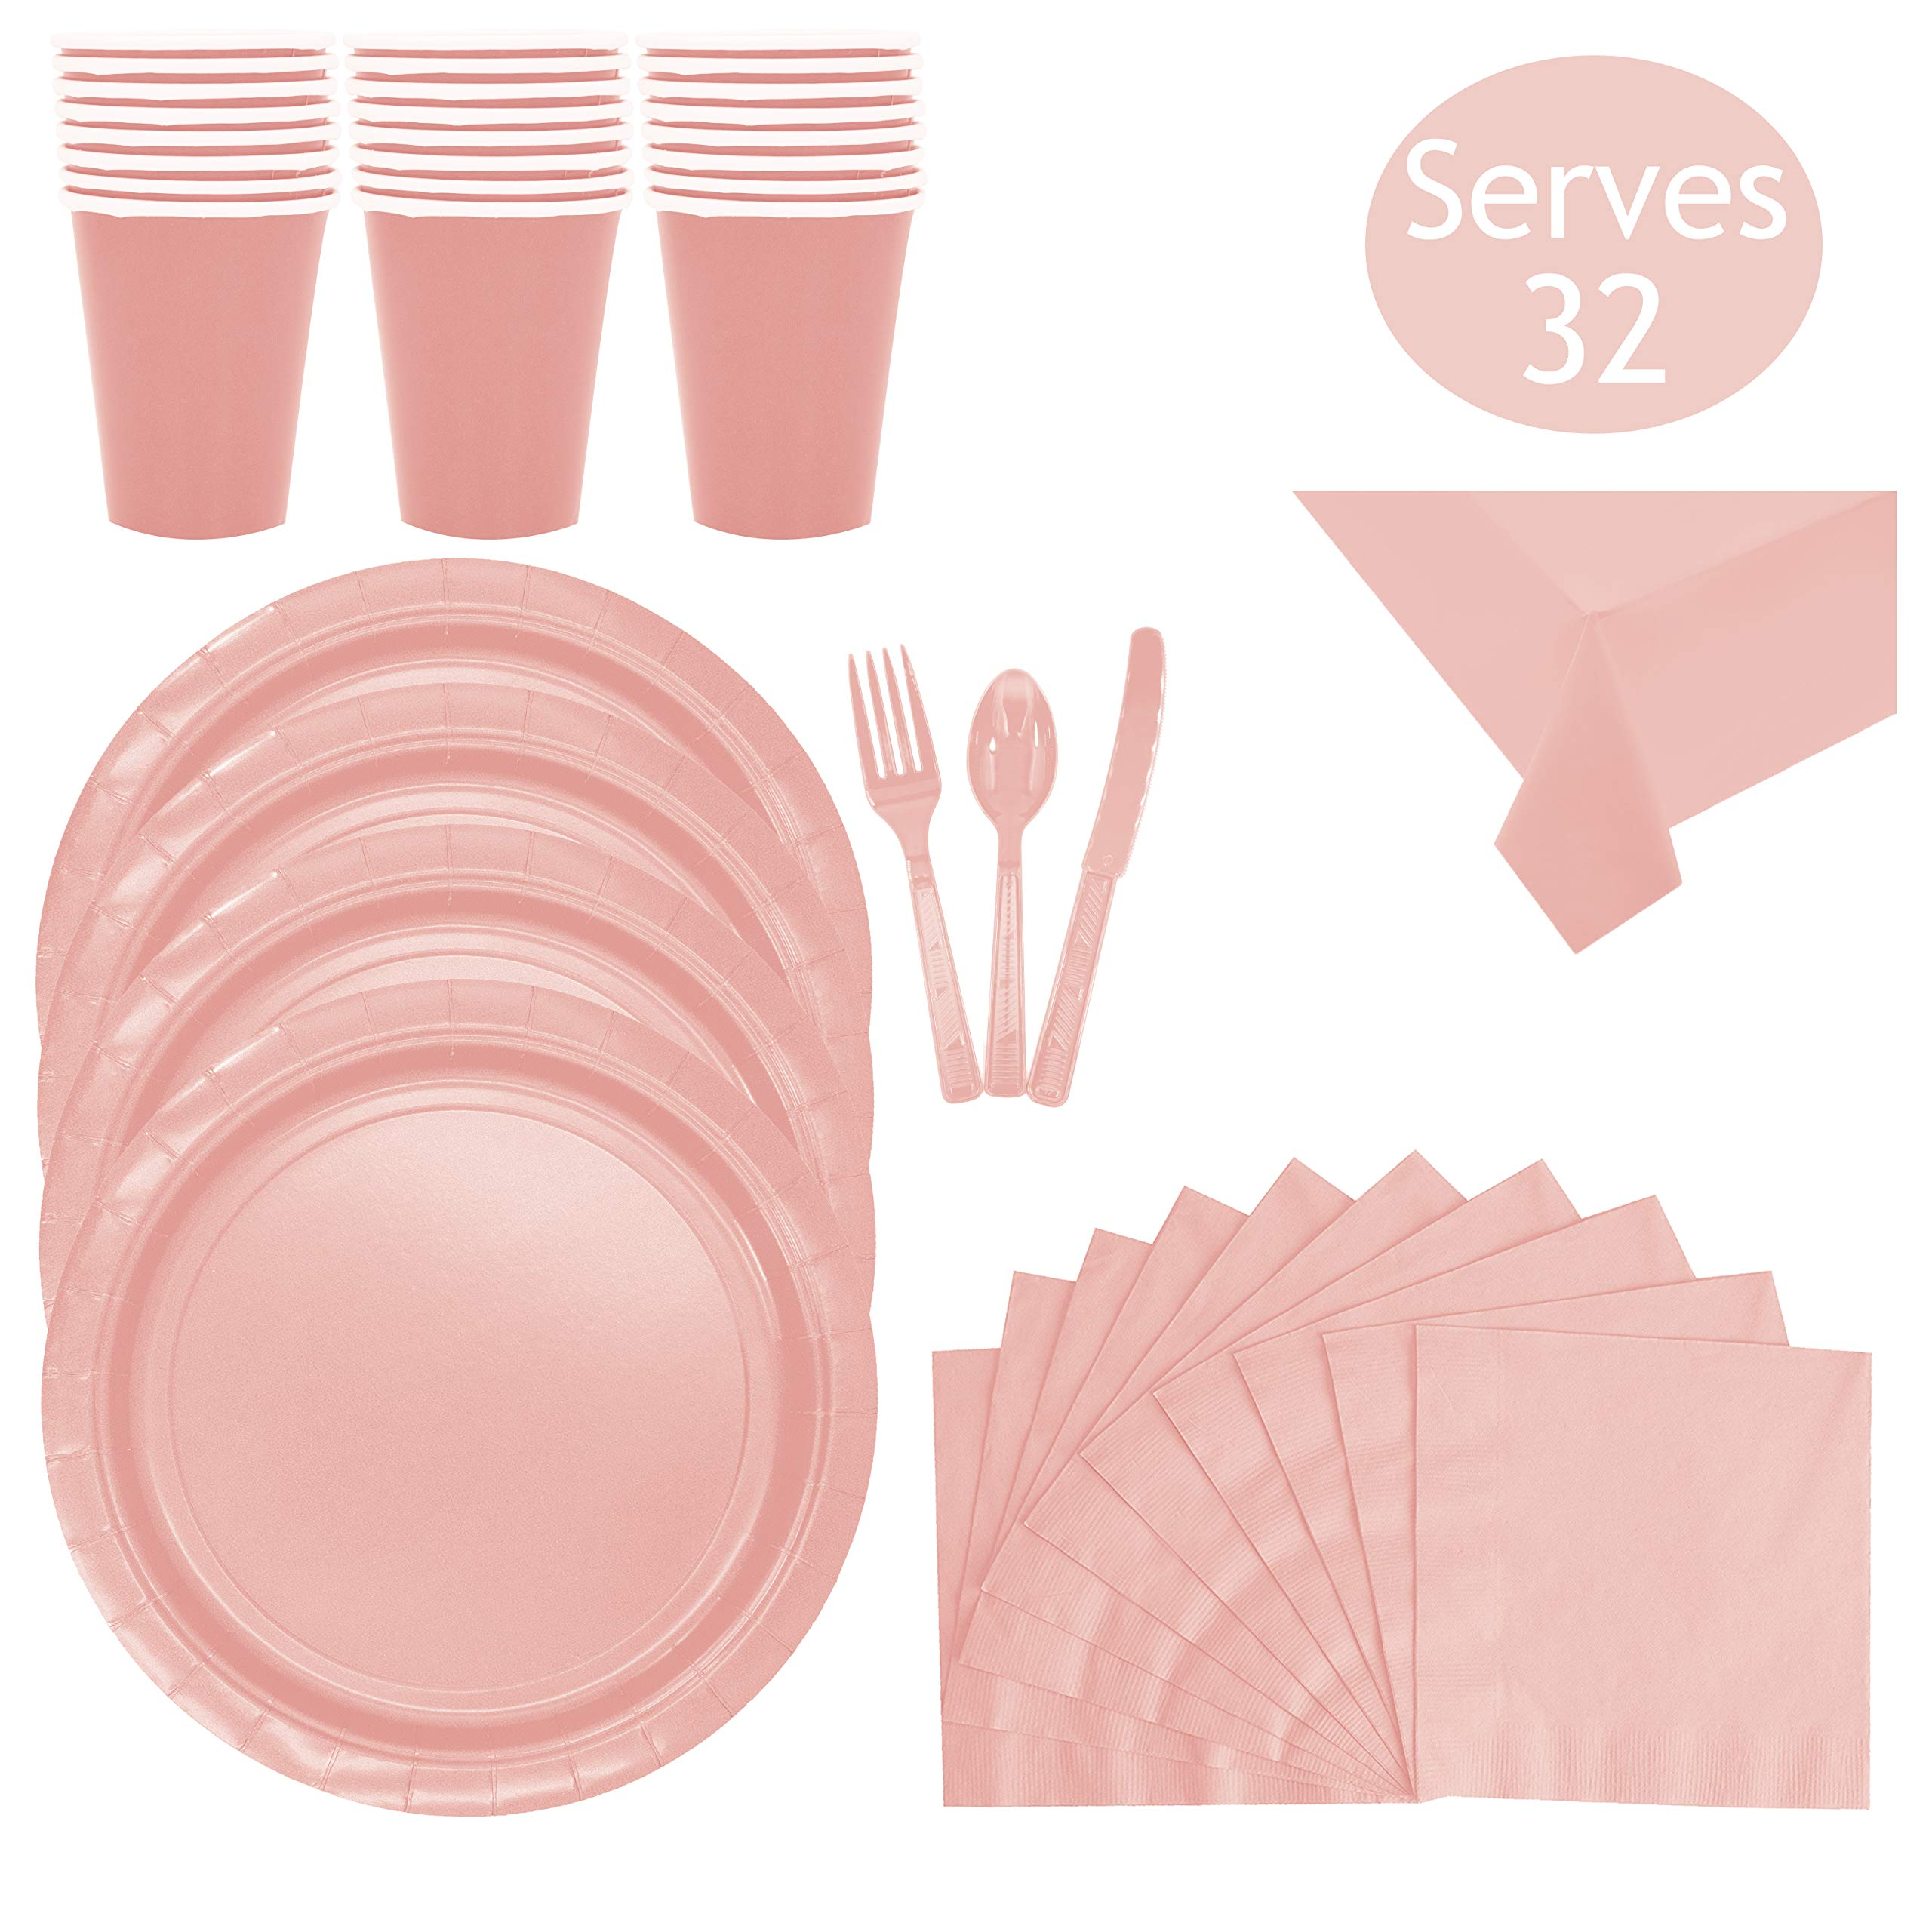 Disposable Pink Dinnerware Party Supplies - Serves 32 - Includes Pink Plastic Forks, Spoons, Knives, Napkins, Paper Cups Plates and two Table Clothes